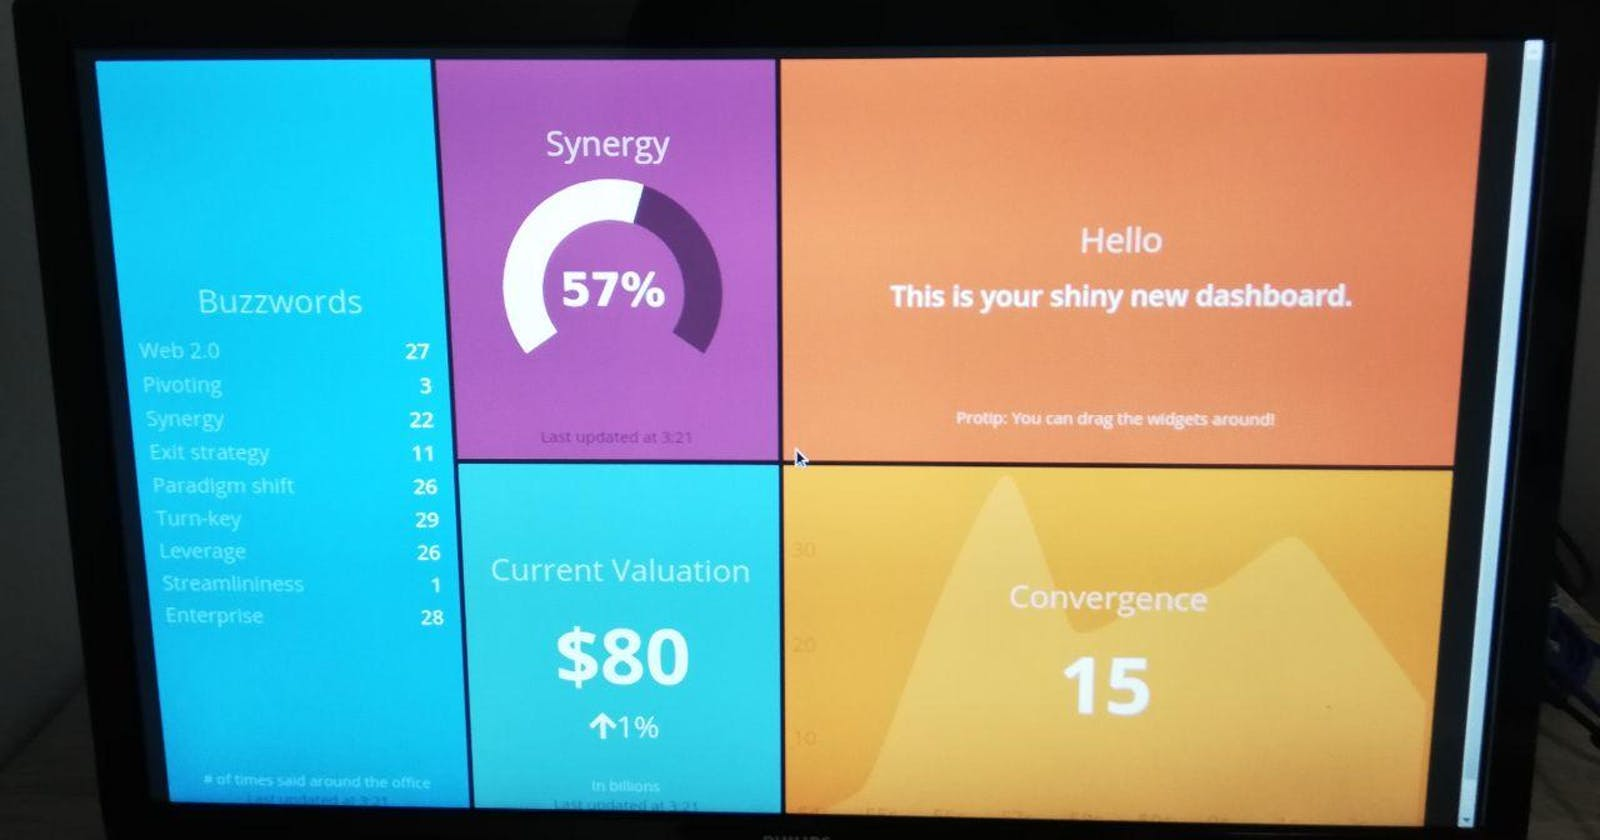 How to set up a Smashing dashboard on your Raspberry Pi